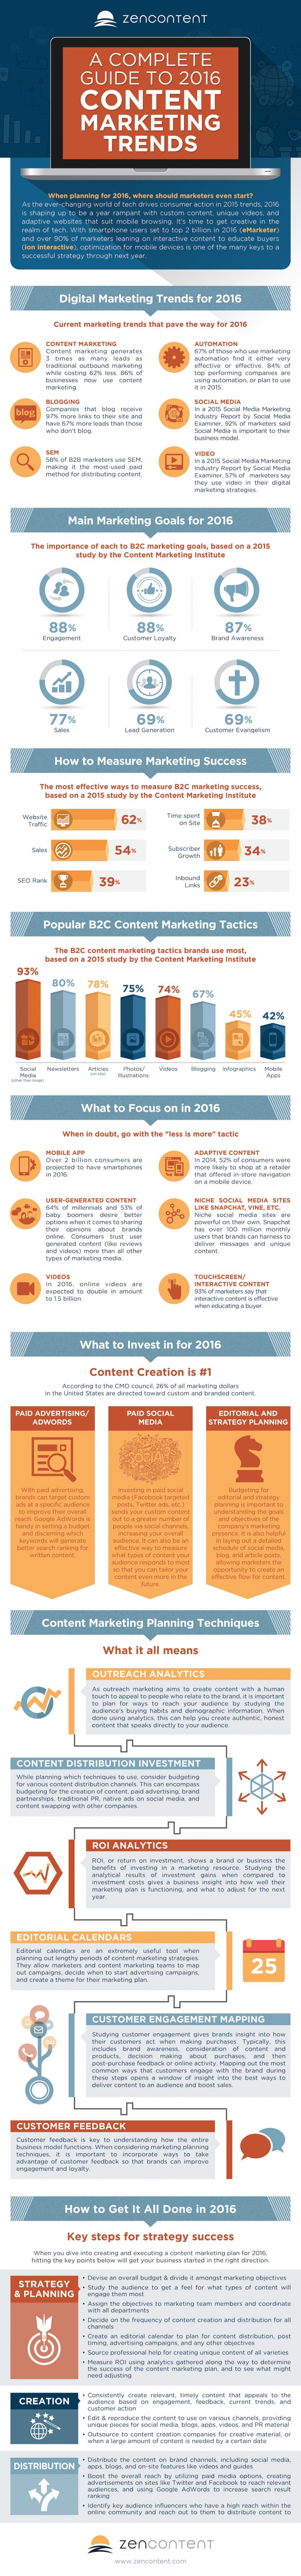 Content Marketing Trends 2016 – Die optimale Marketing Strategie für Unternehmen [Infografik]